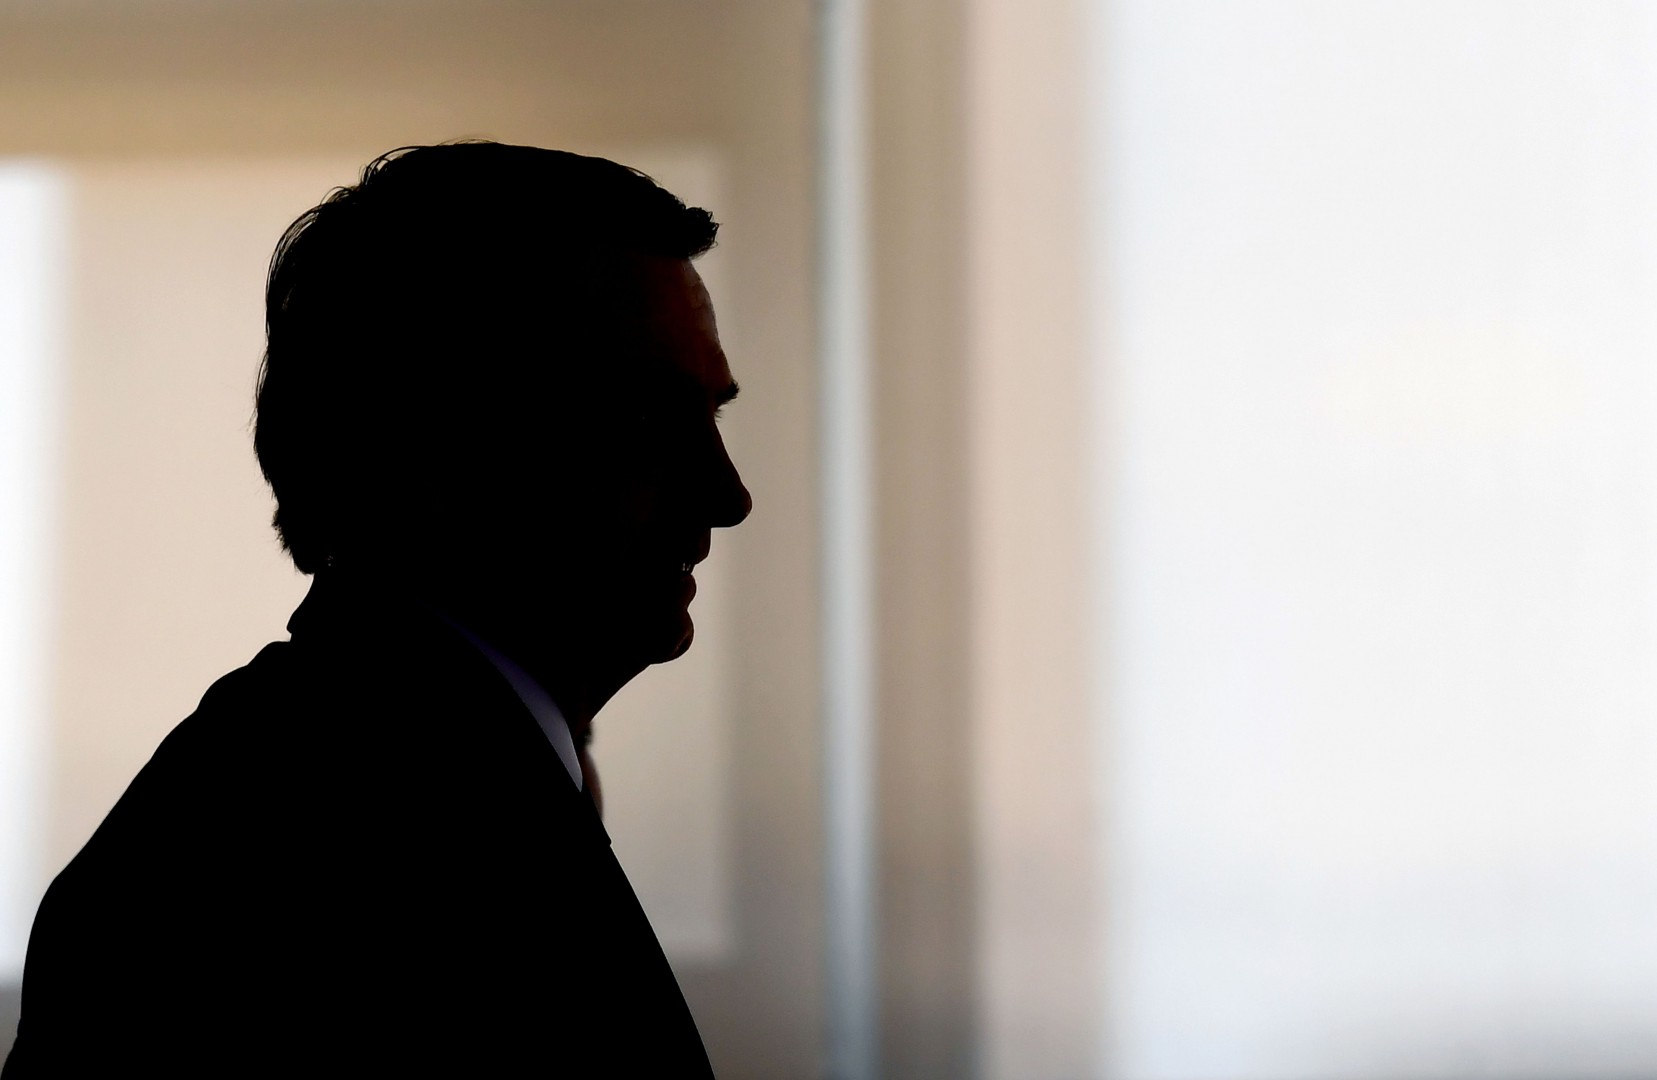 TOPSHOT - Brazilian President Jair Bolsonaro is silhouetted during the appointment ceremony of the new heads of public banks, at Planalto Palace in Brasilia on January 7, 2019. - Brazil's Finance Minister Paulo Guedes appointed the new presidents of the country's public banks. (Photo by EVARISTO SA / AFP)